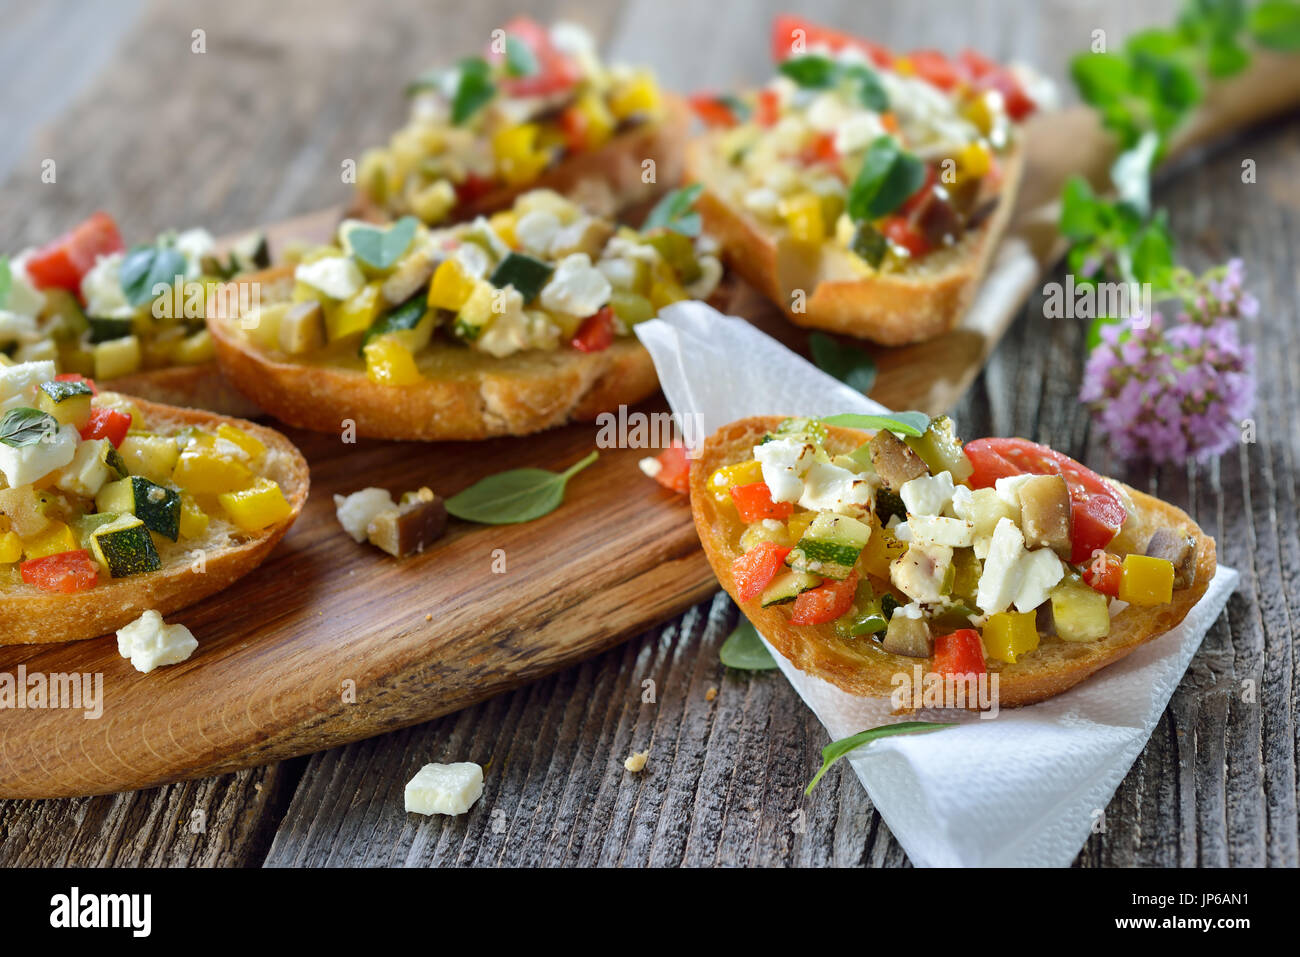 Warm vegetarian canapes: Baked crostini with mixed Greek vegetables with feta cheese served on a wooden cutting board - Stock Image